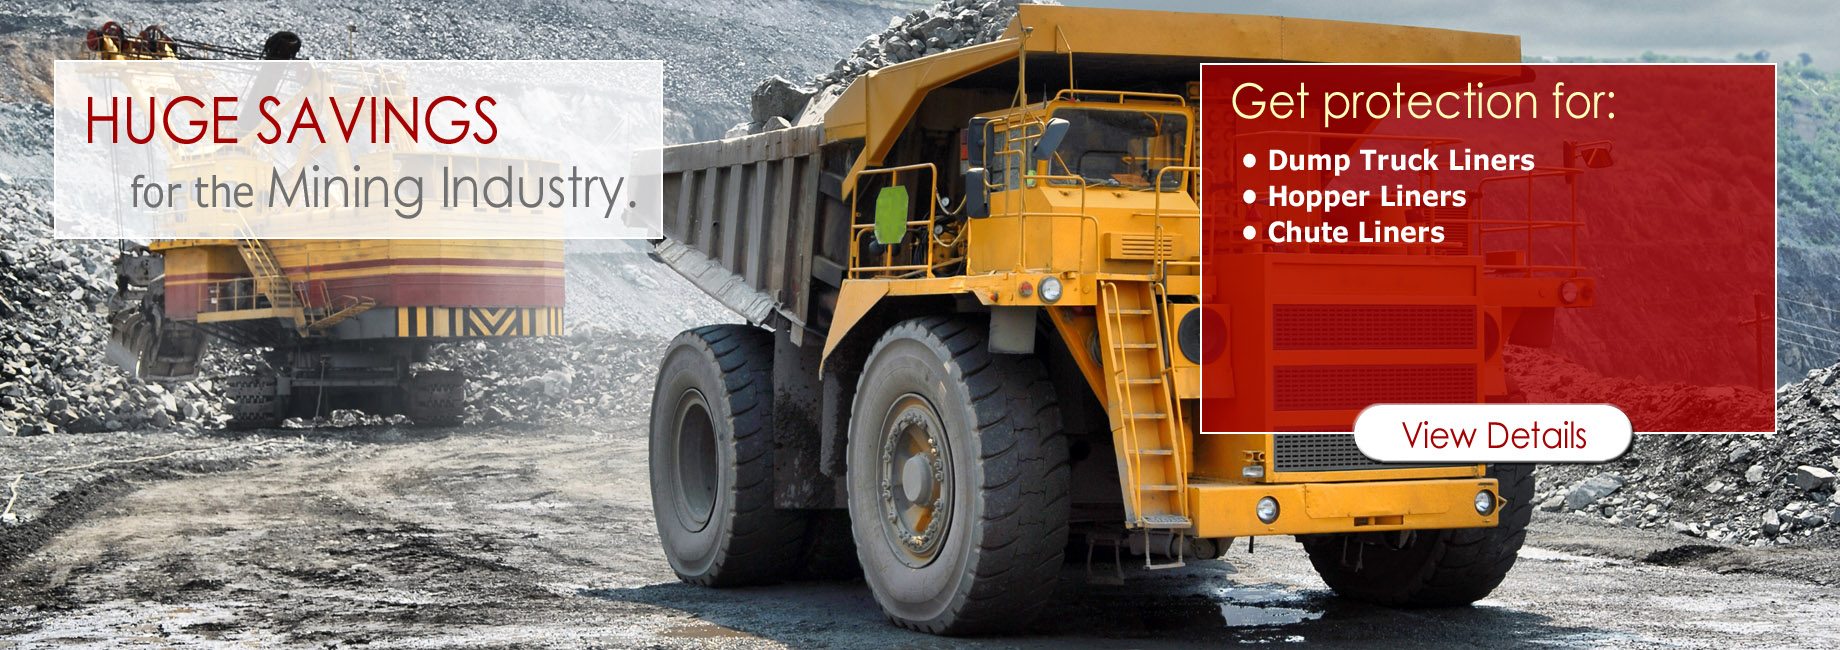 Cost Savings for the Mining Industry - View Details